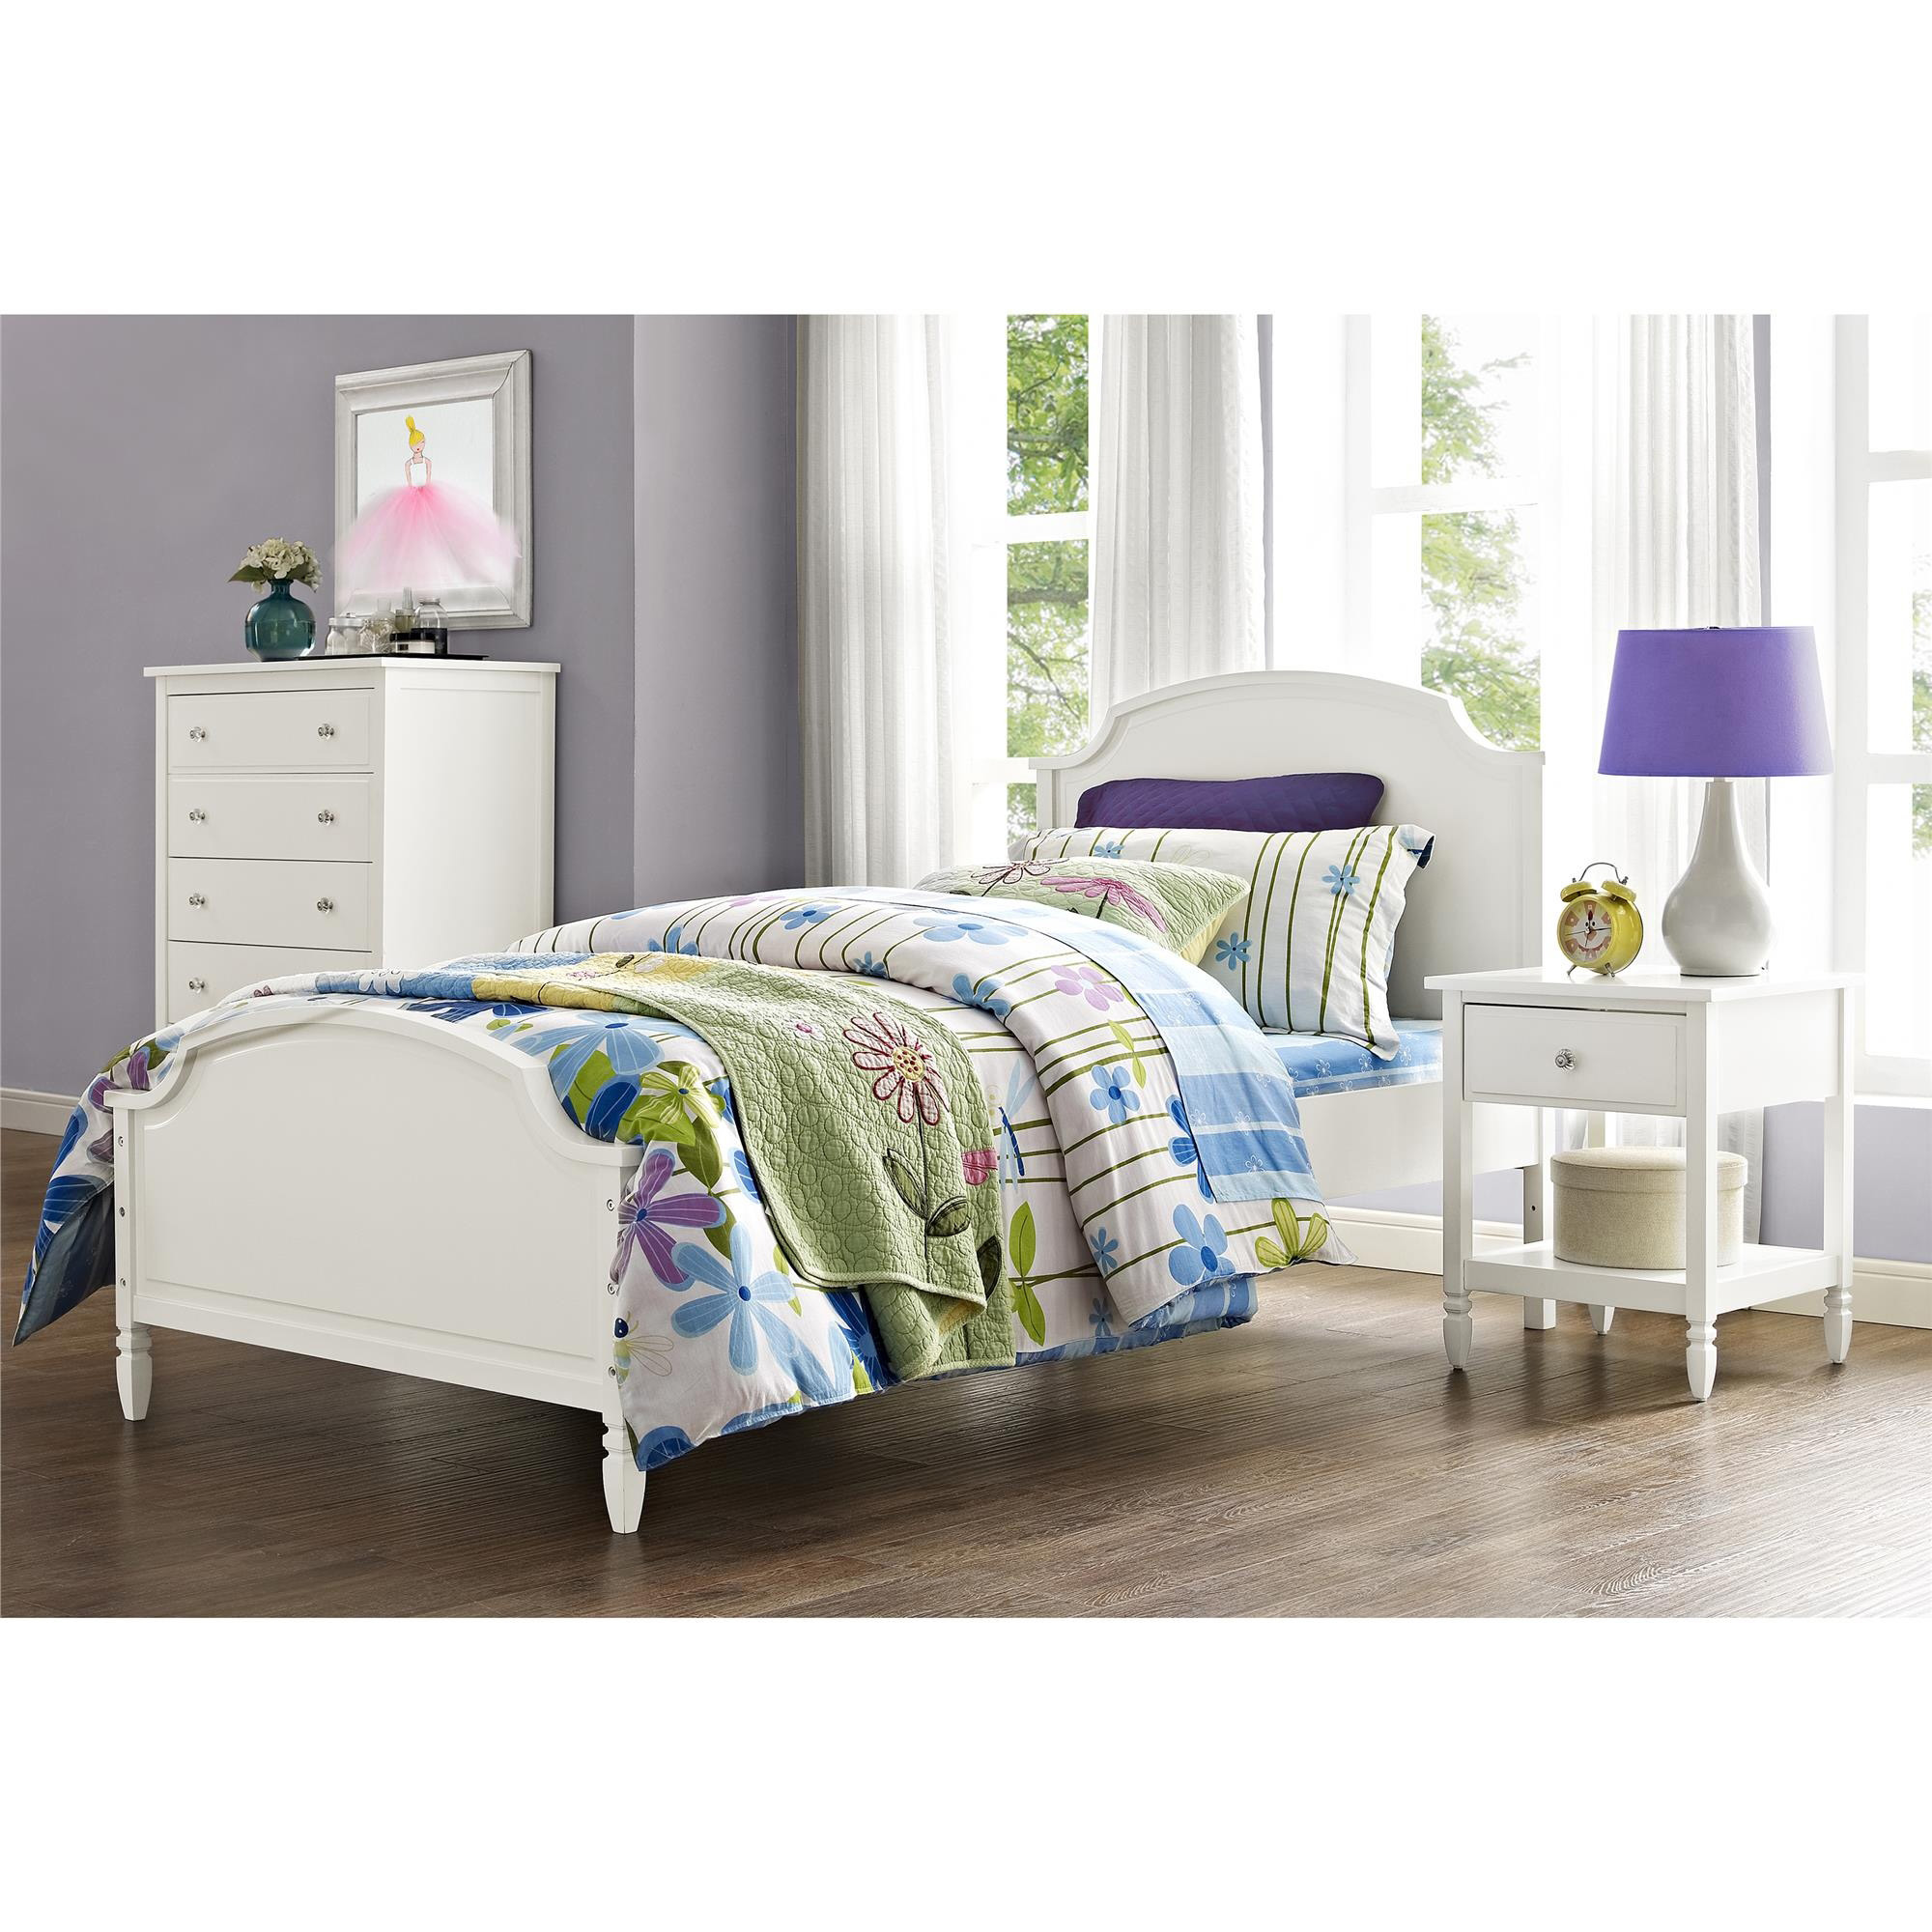 Better Homes and Gardens Lillian Twin Bed